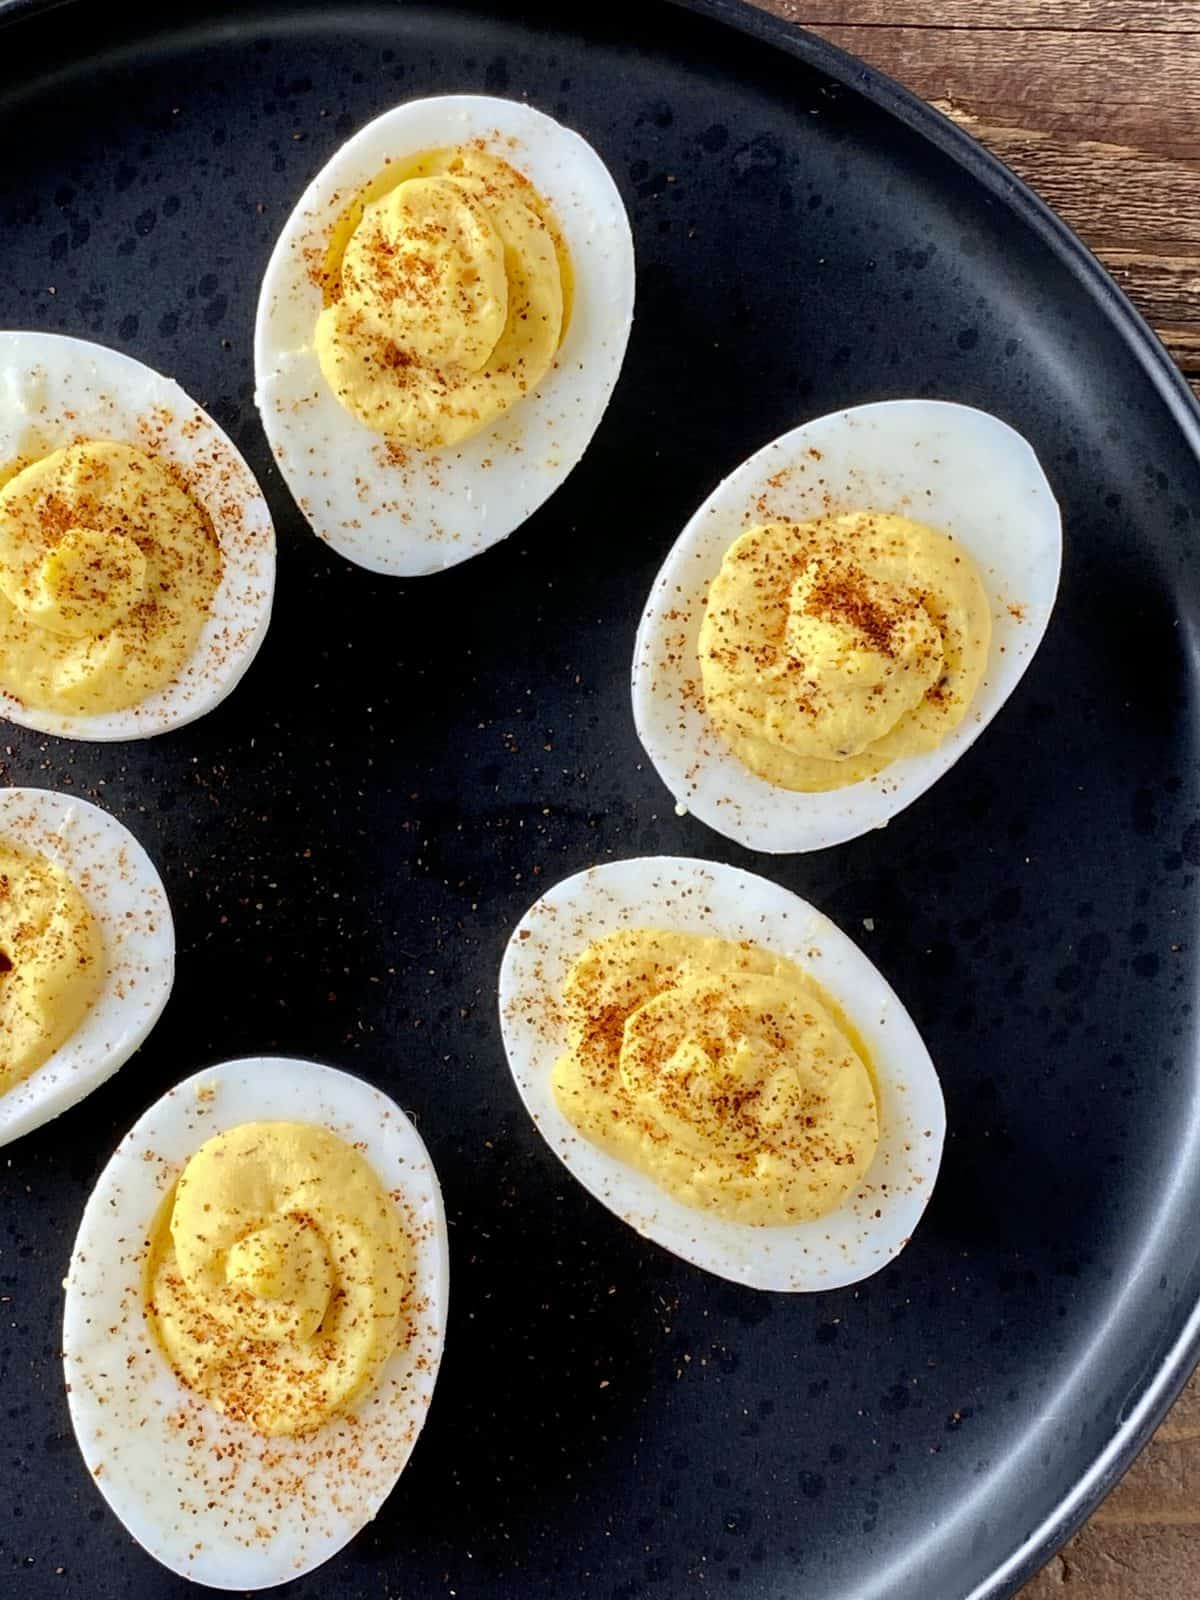 healthy deviled eggs with horseradish on a black plate